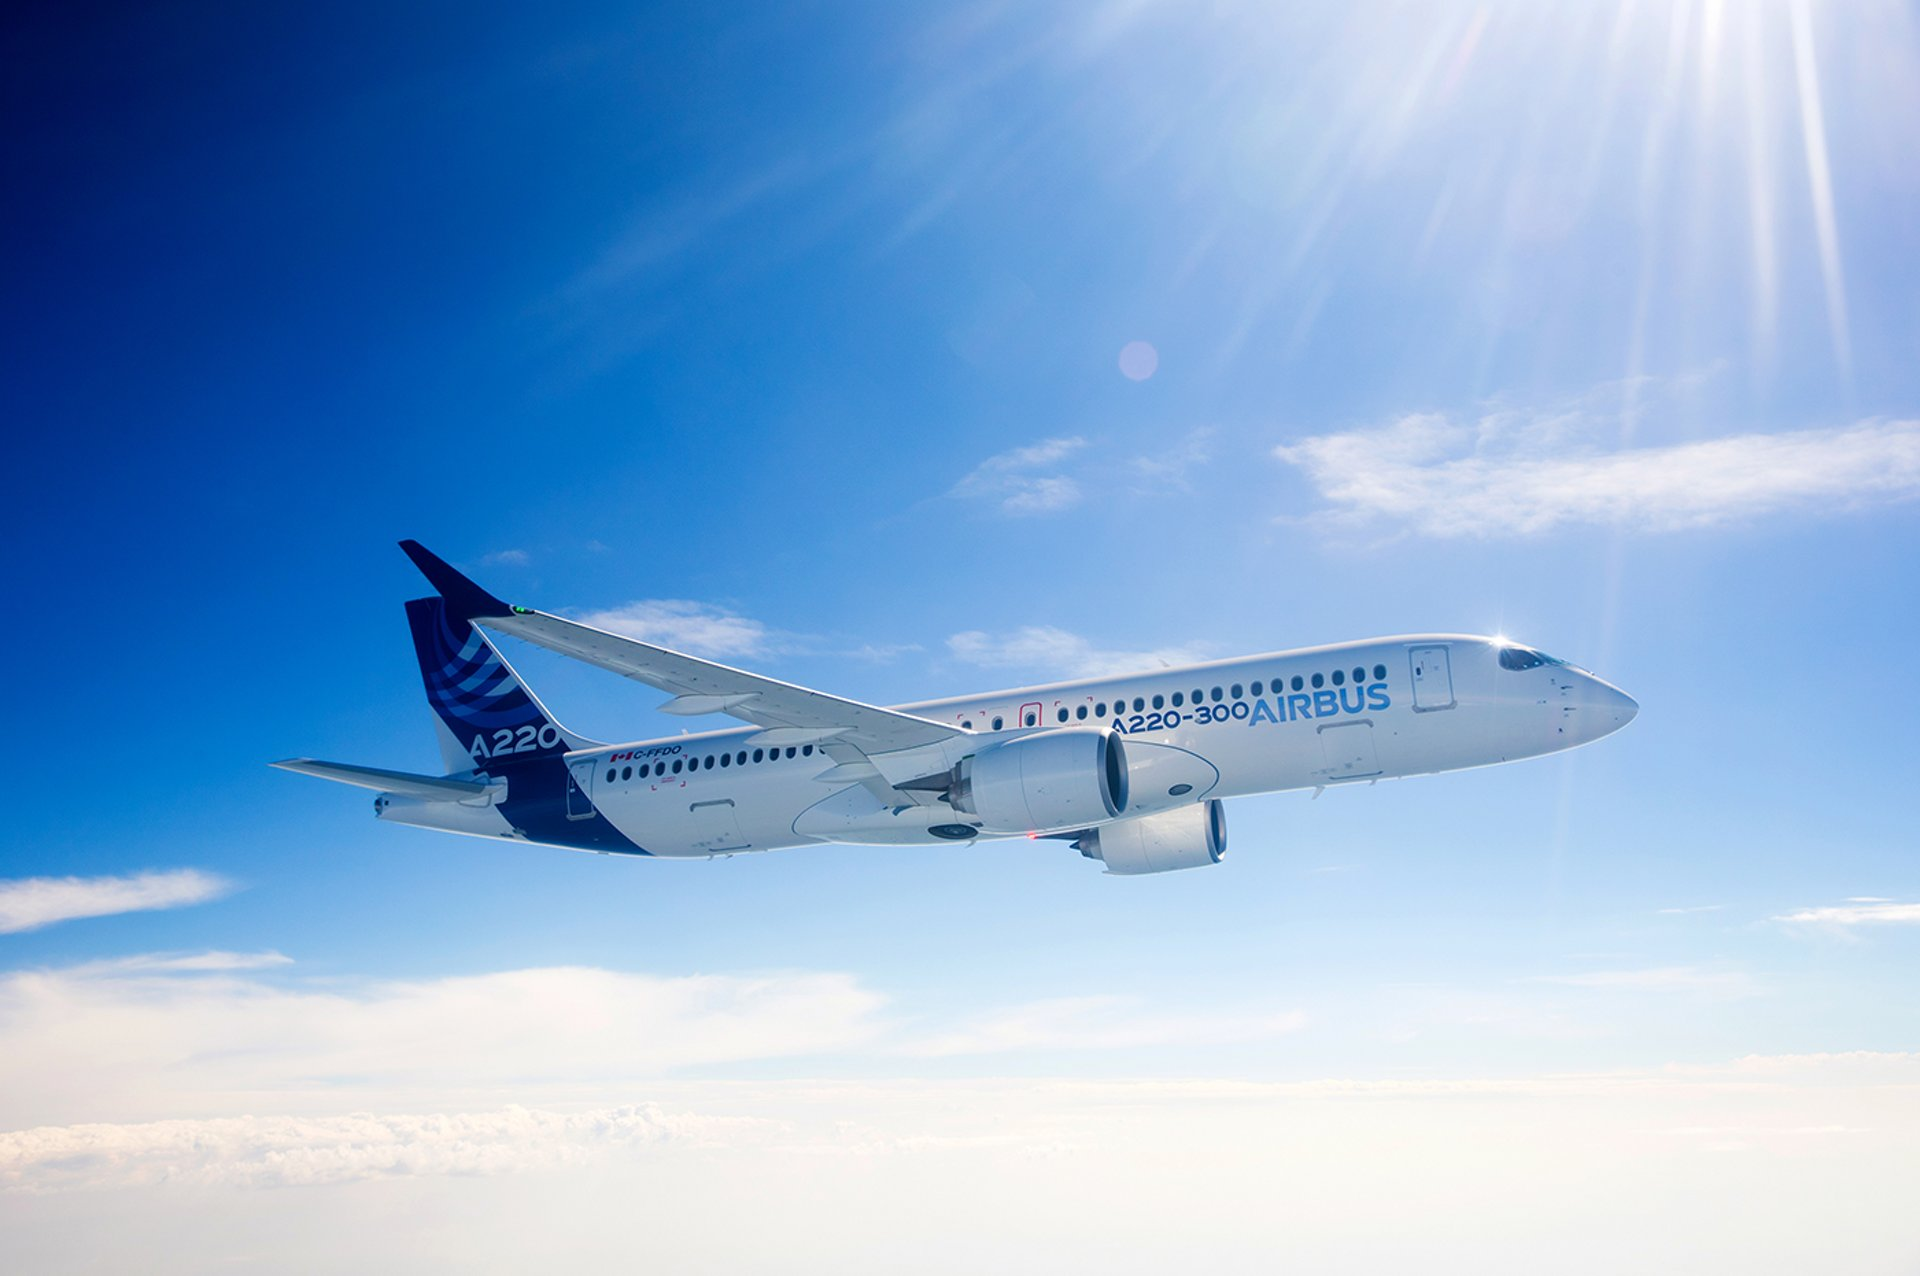 Airbus announces major performance improvement to its latest single-aisle aircraft – the A220 Family